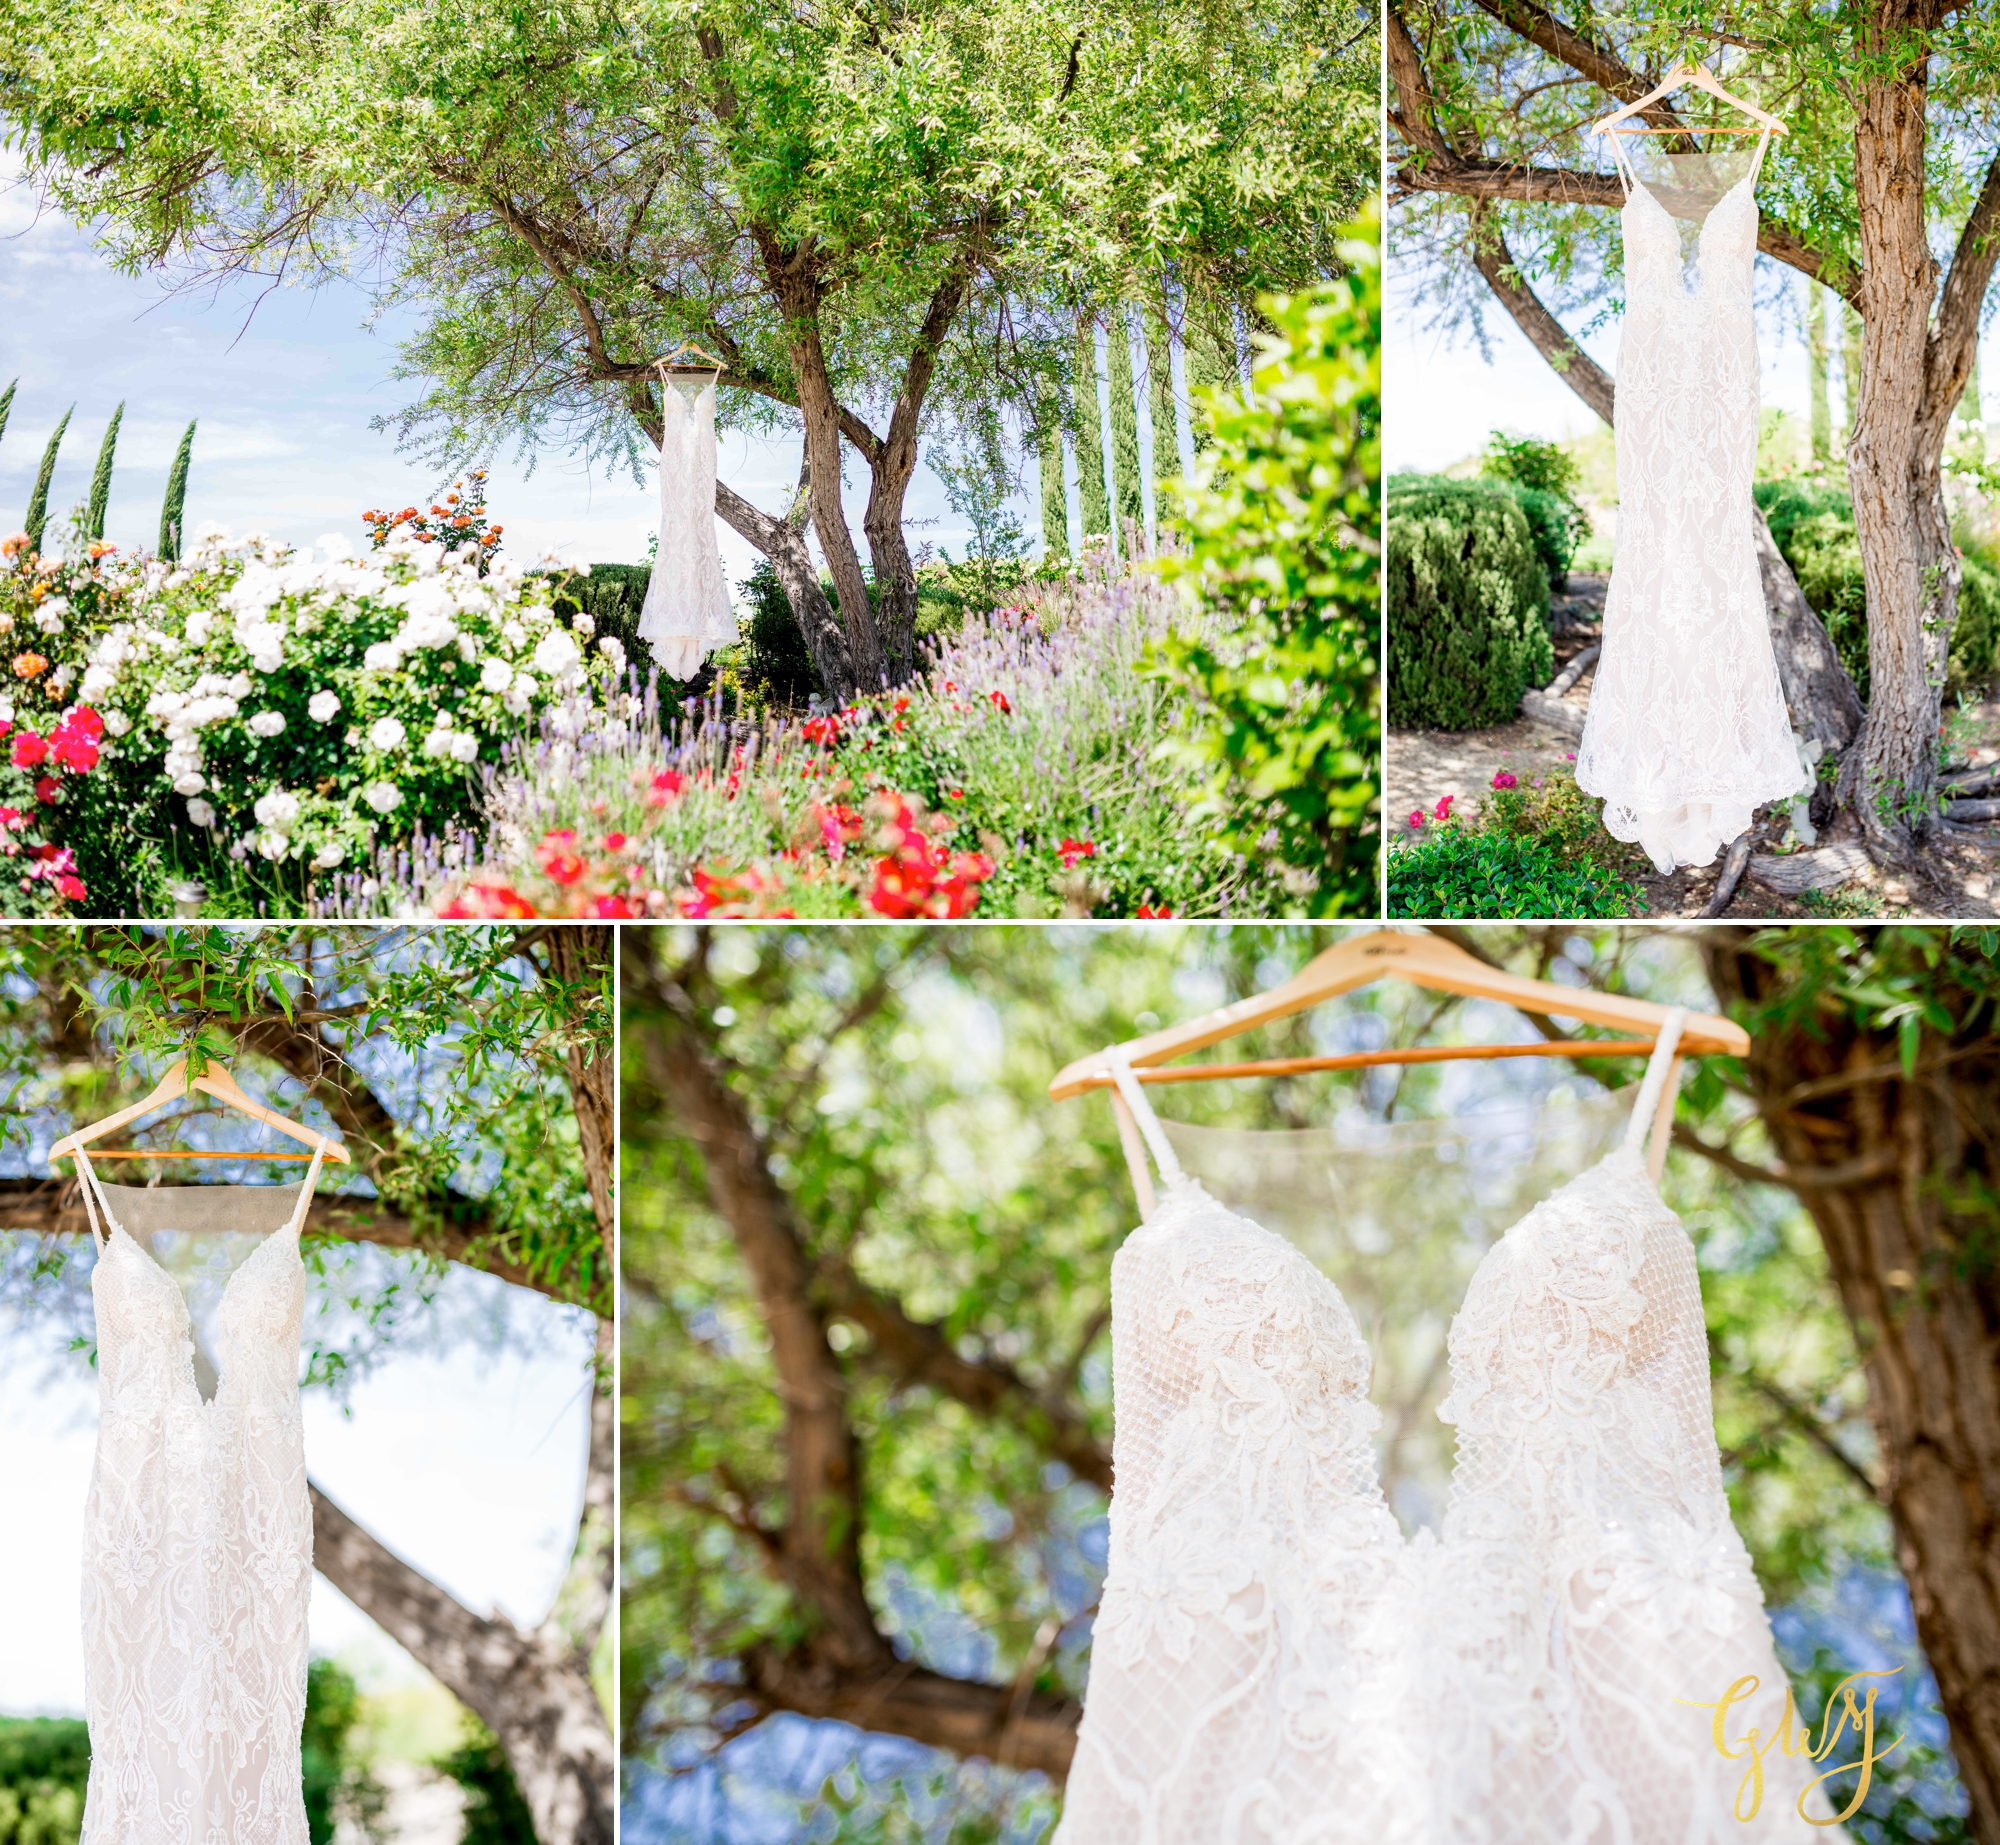 Kristen + Krsto's Romantic Temecula Winery Spring Wedding by Glass Woods Media 3.jpg